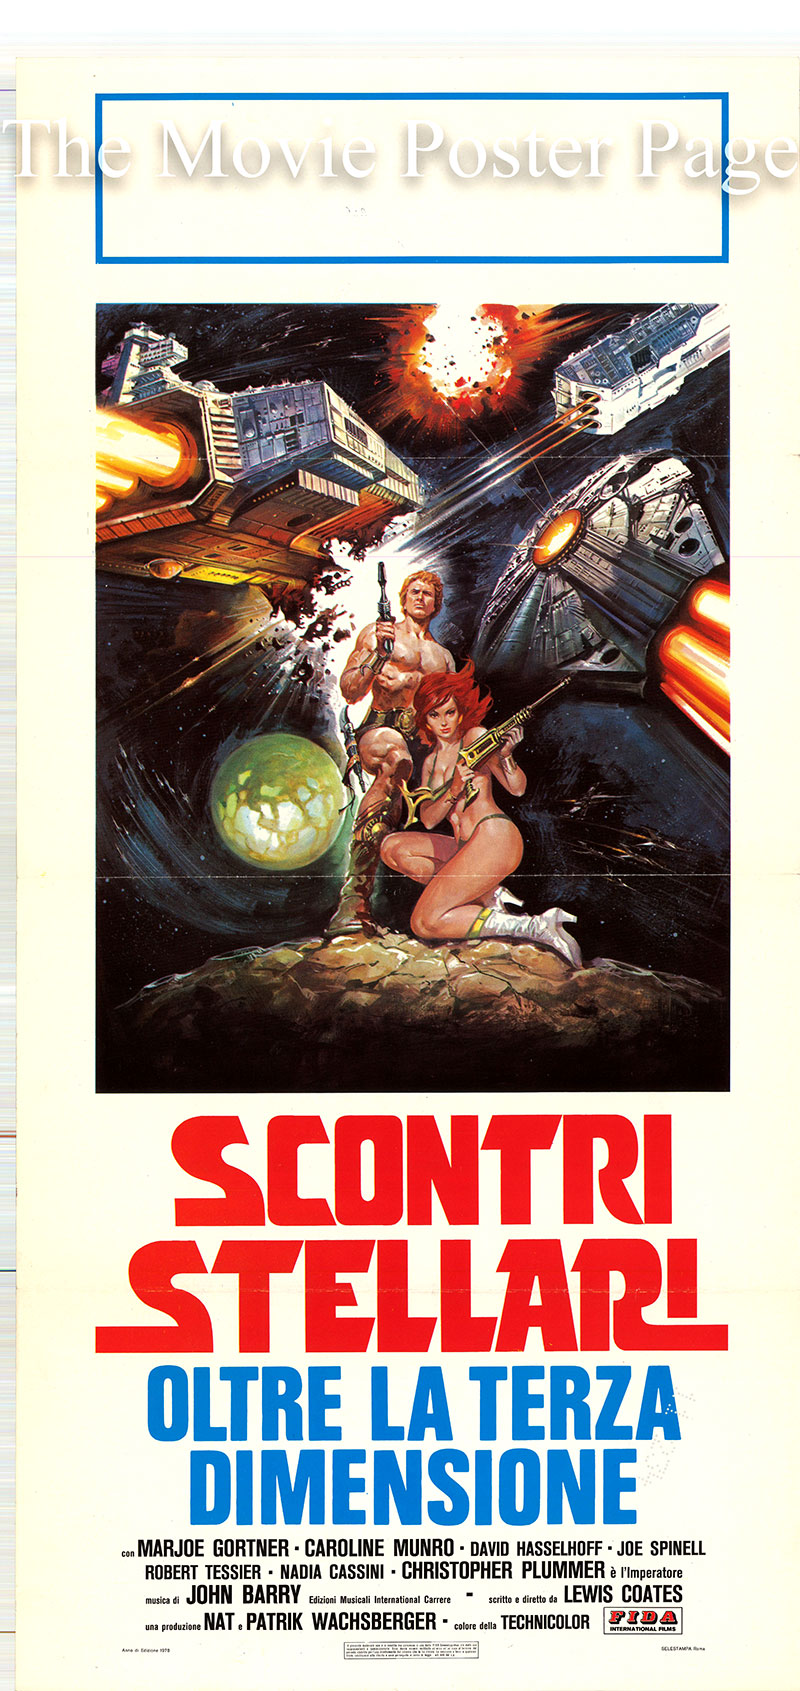 Pictured is a Italian locandina promotional poster for the 1967 Luigi Cozzi film Starcrash starring Caroline Munro as Stella Star.